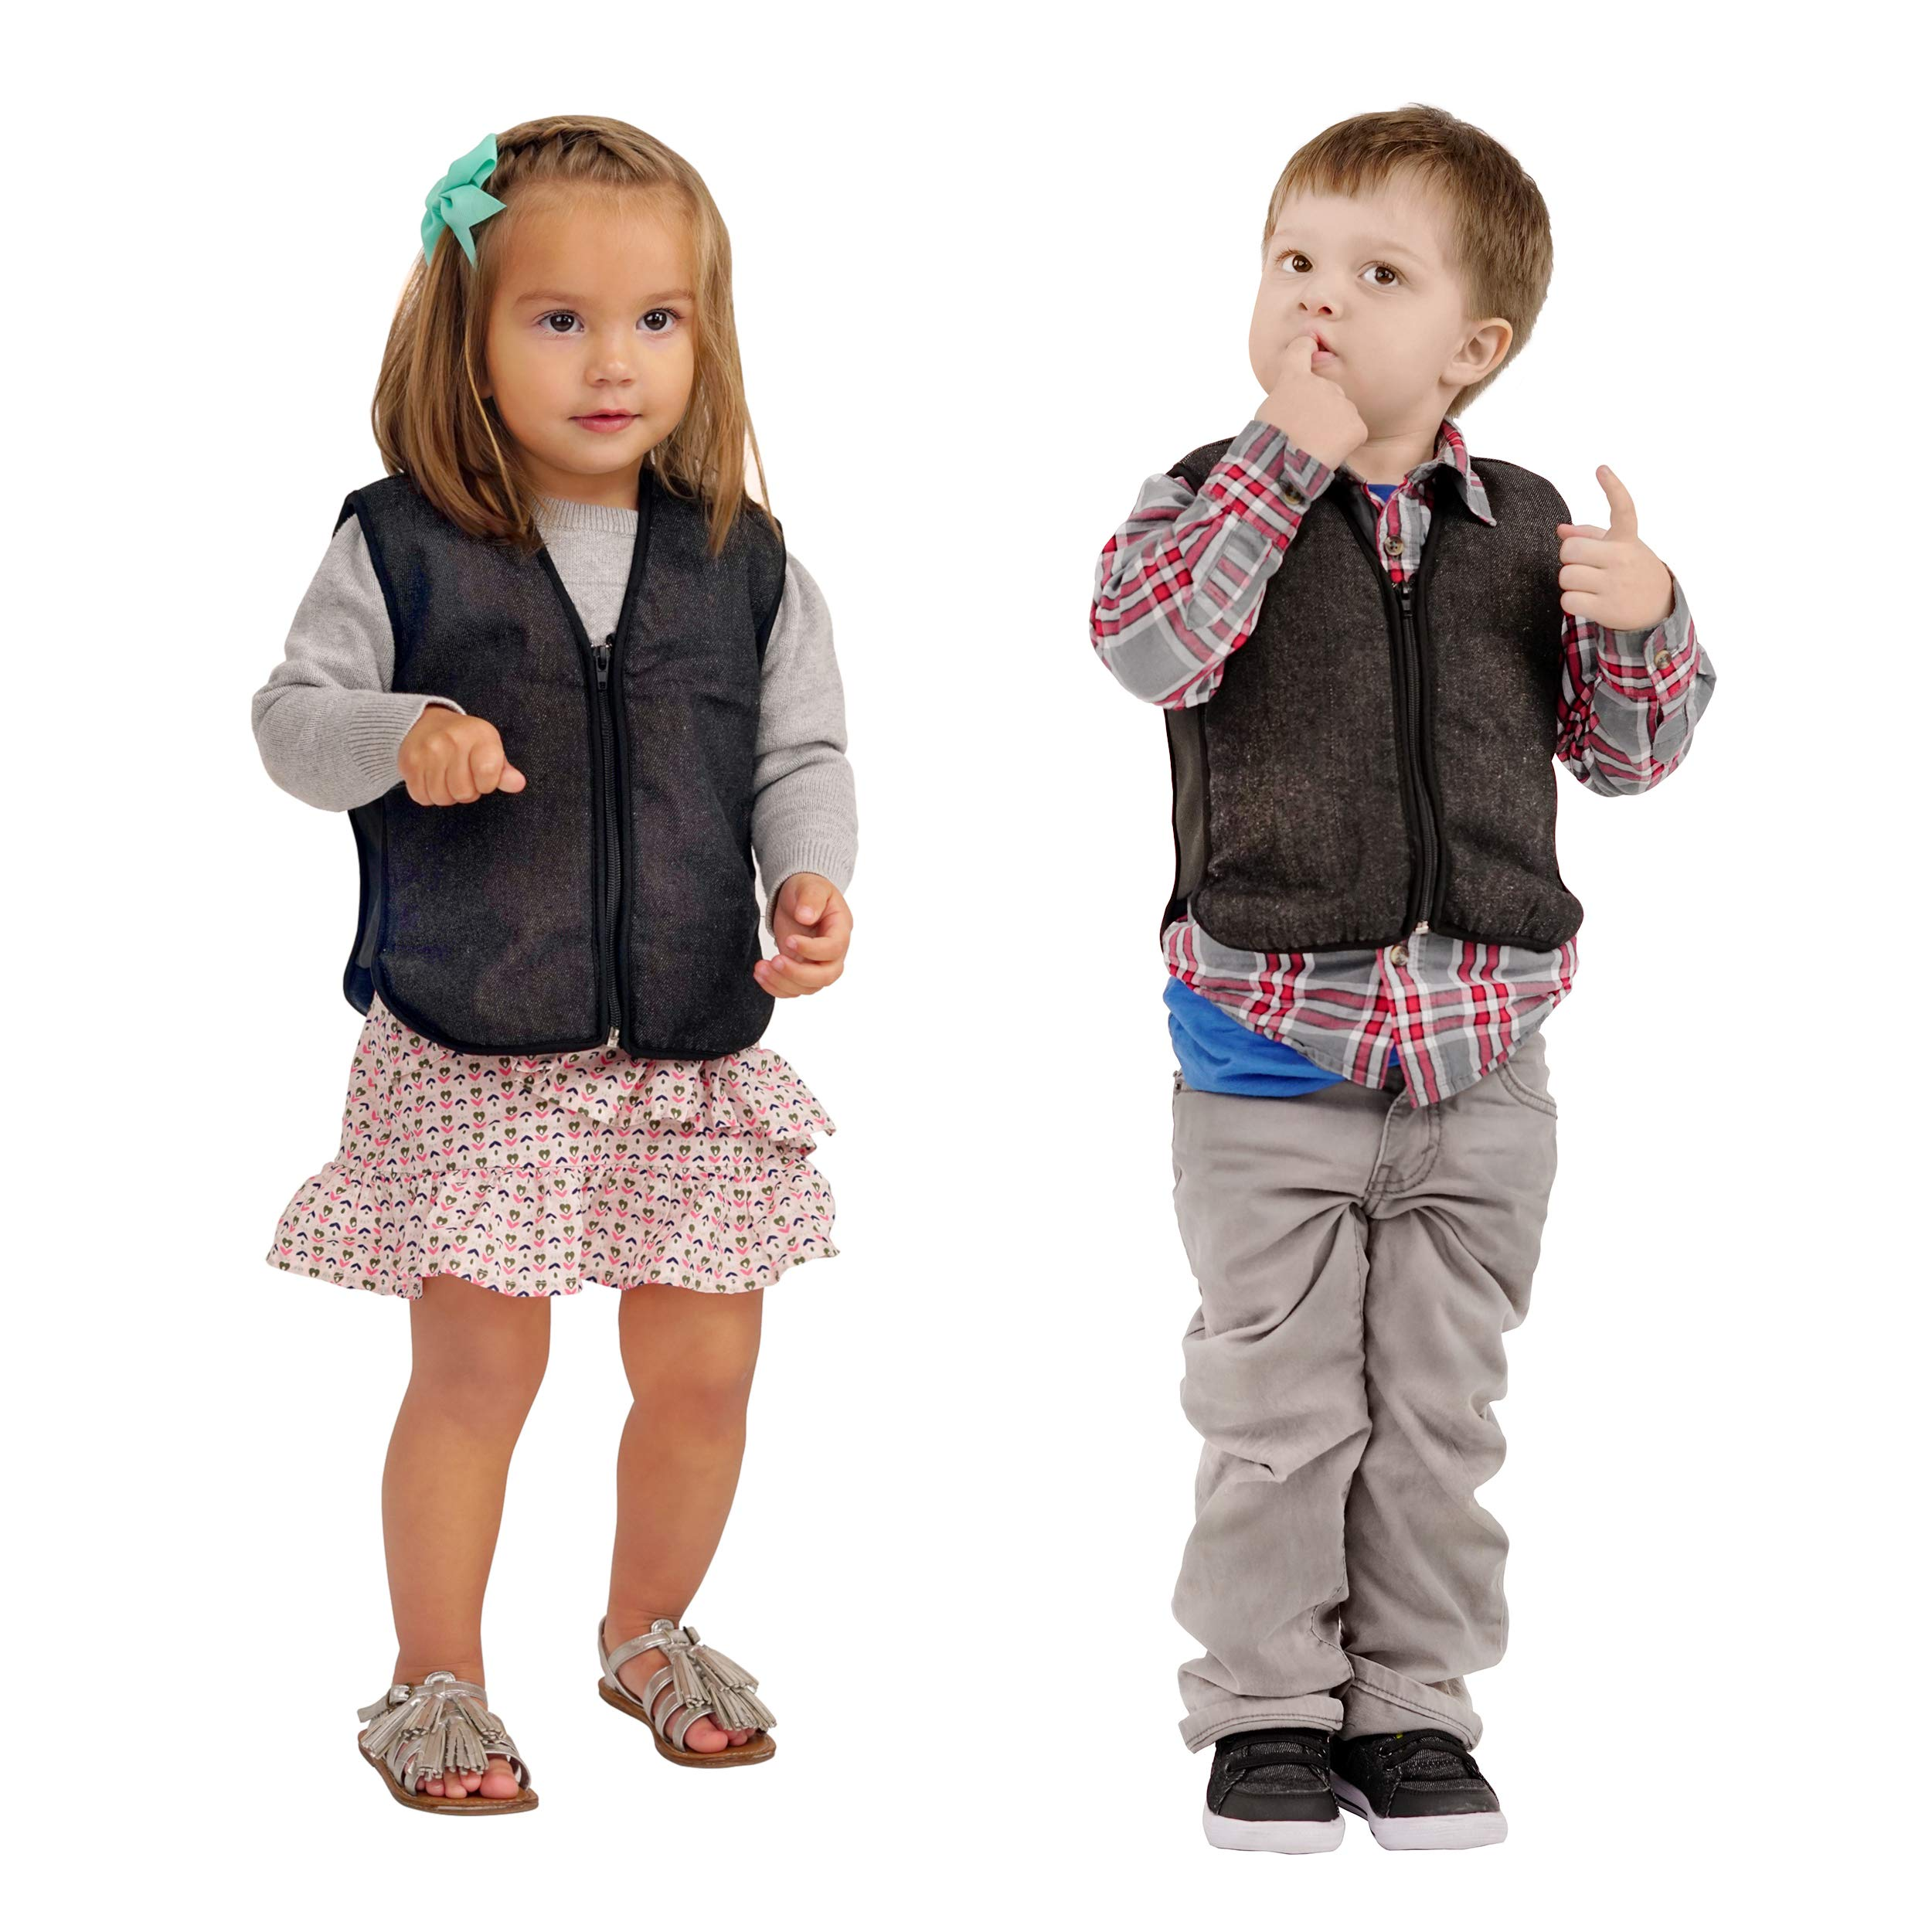 ZooVaa Weighted Vest for Kids - Children's Weighted Compression Vest with Removable Weights - by ZooVaa (Small) by ZooVaa